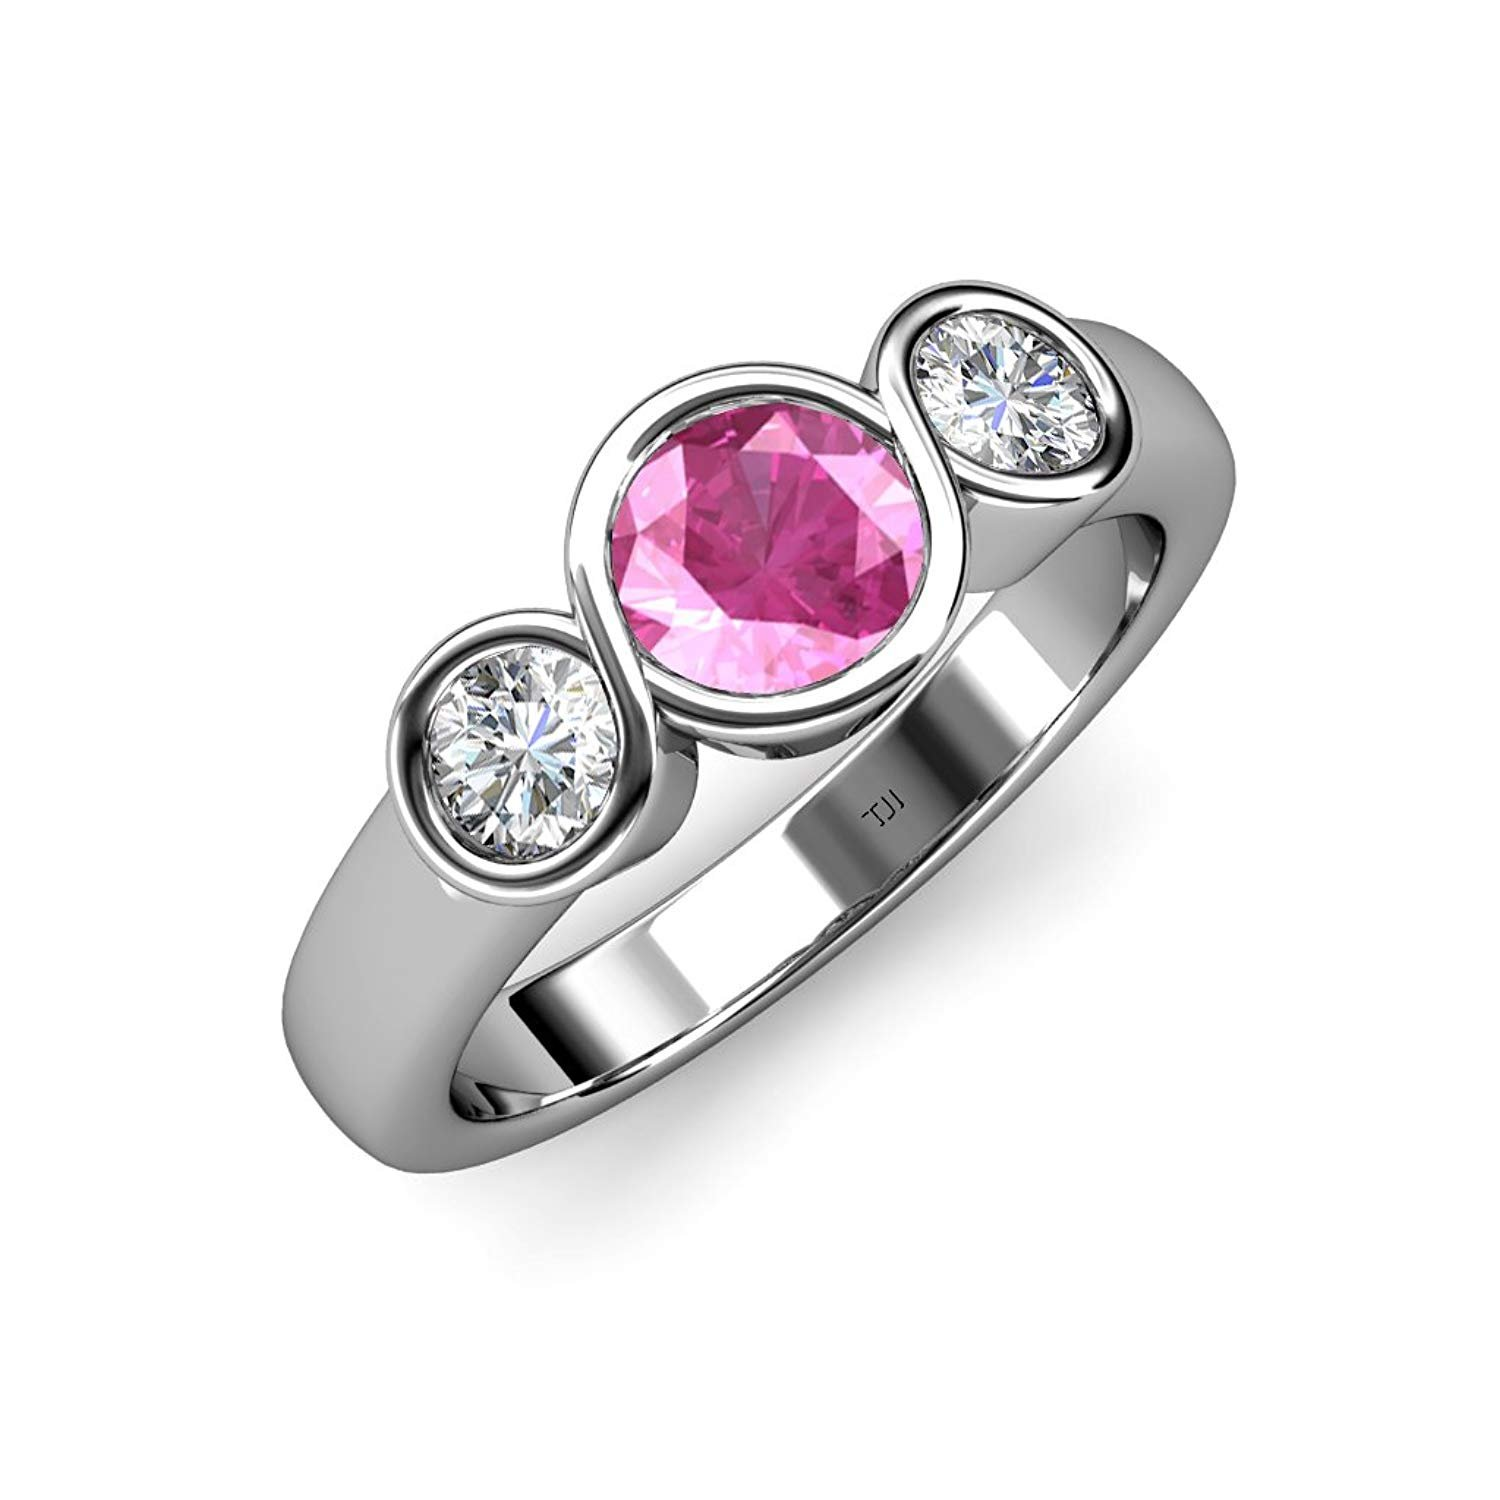 Pink Sapphire and Diamond (SI2, G) Infinity Three Stone Ring 1.85 ct tw in 14K White Gold.size 6.5 by TriJewels